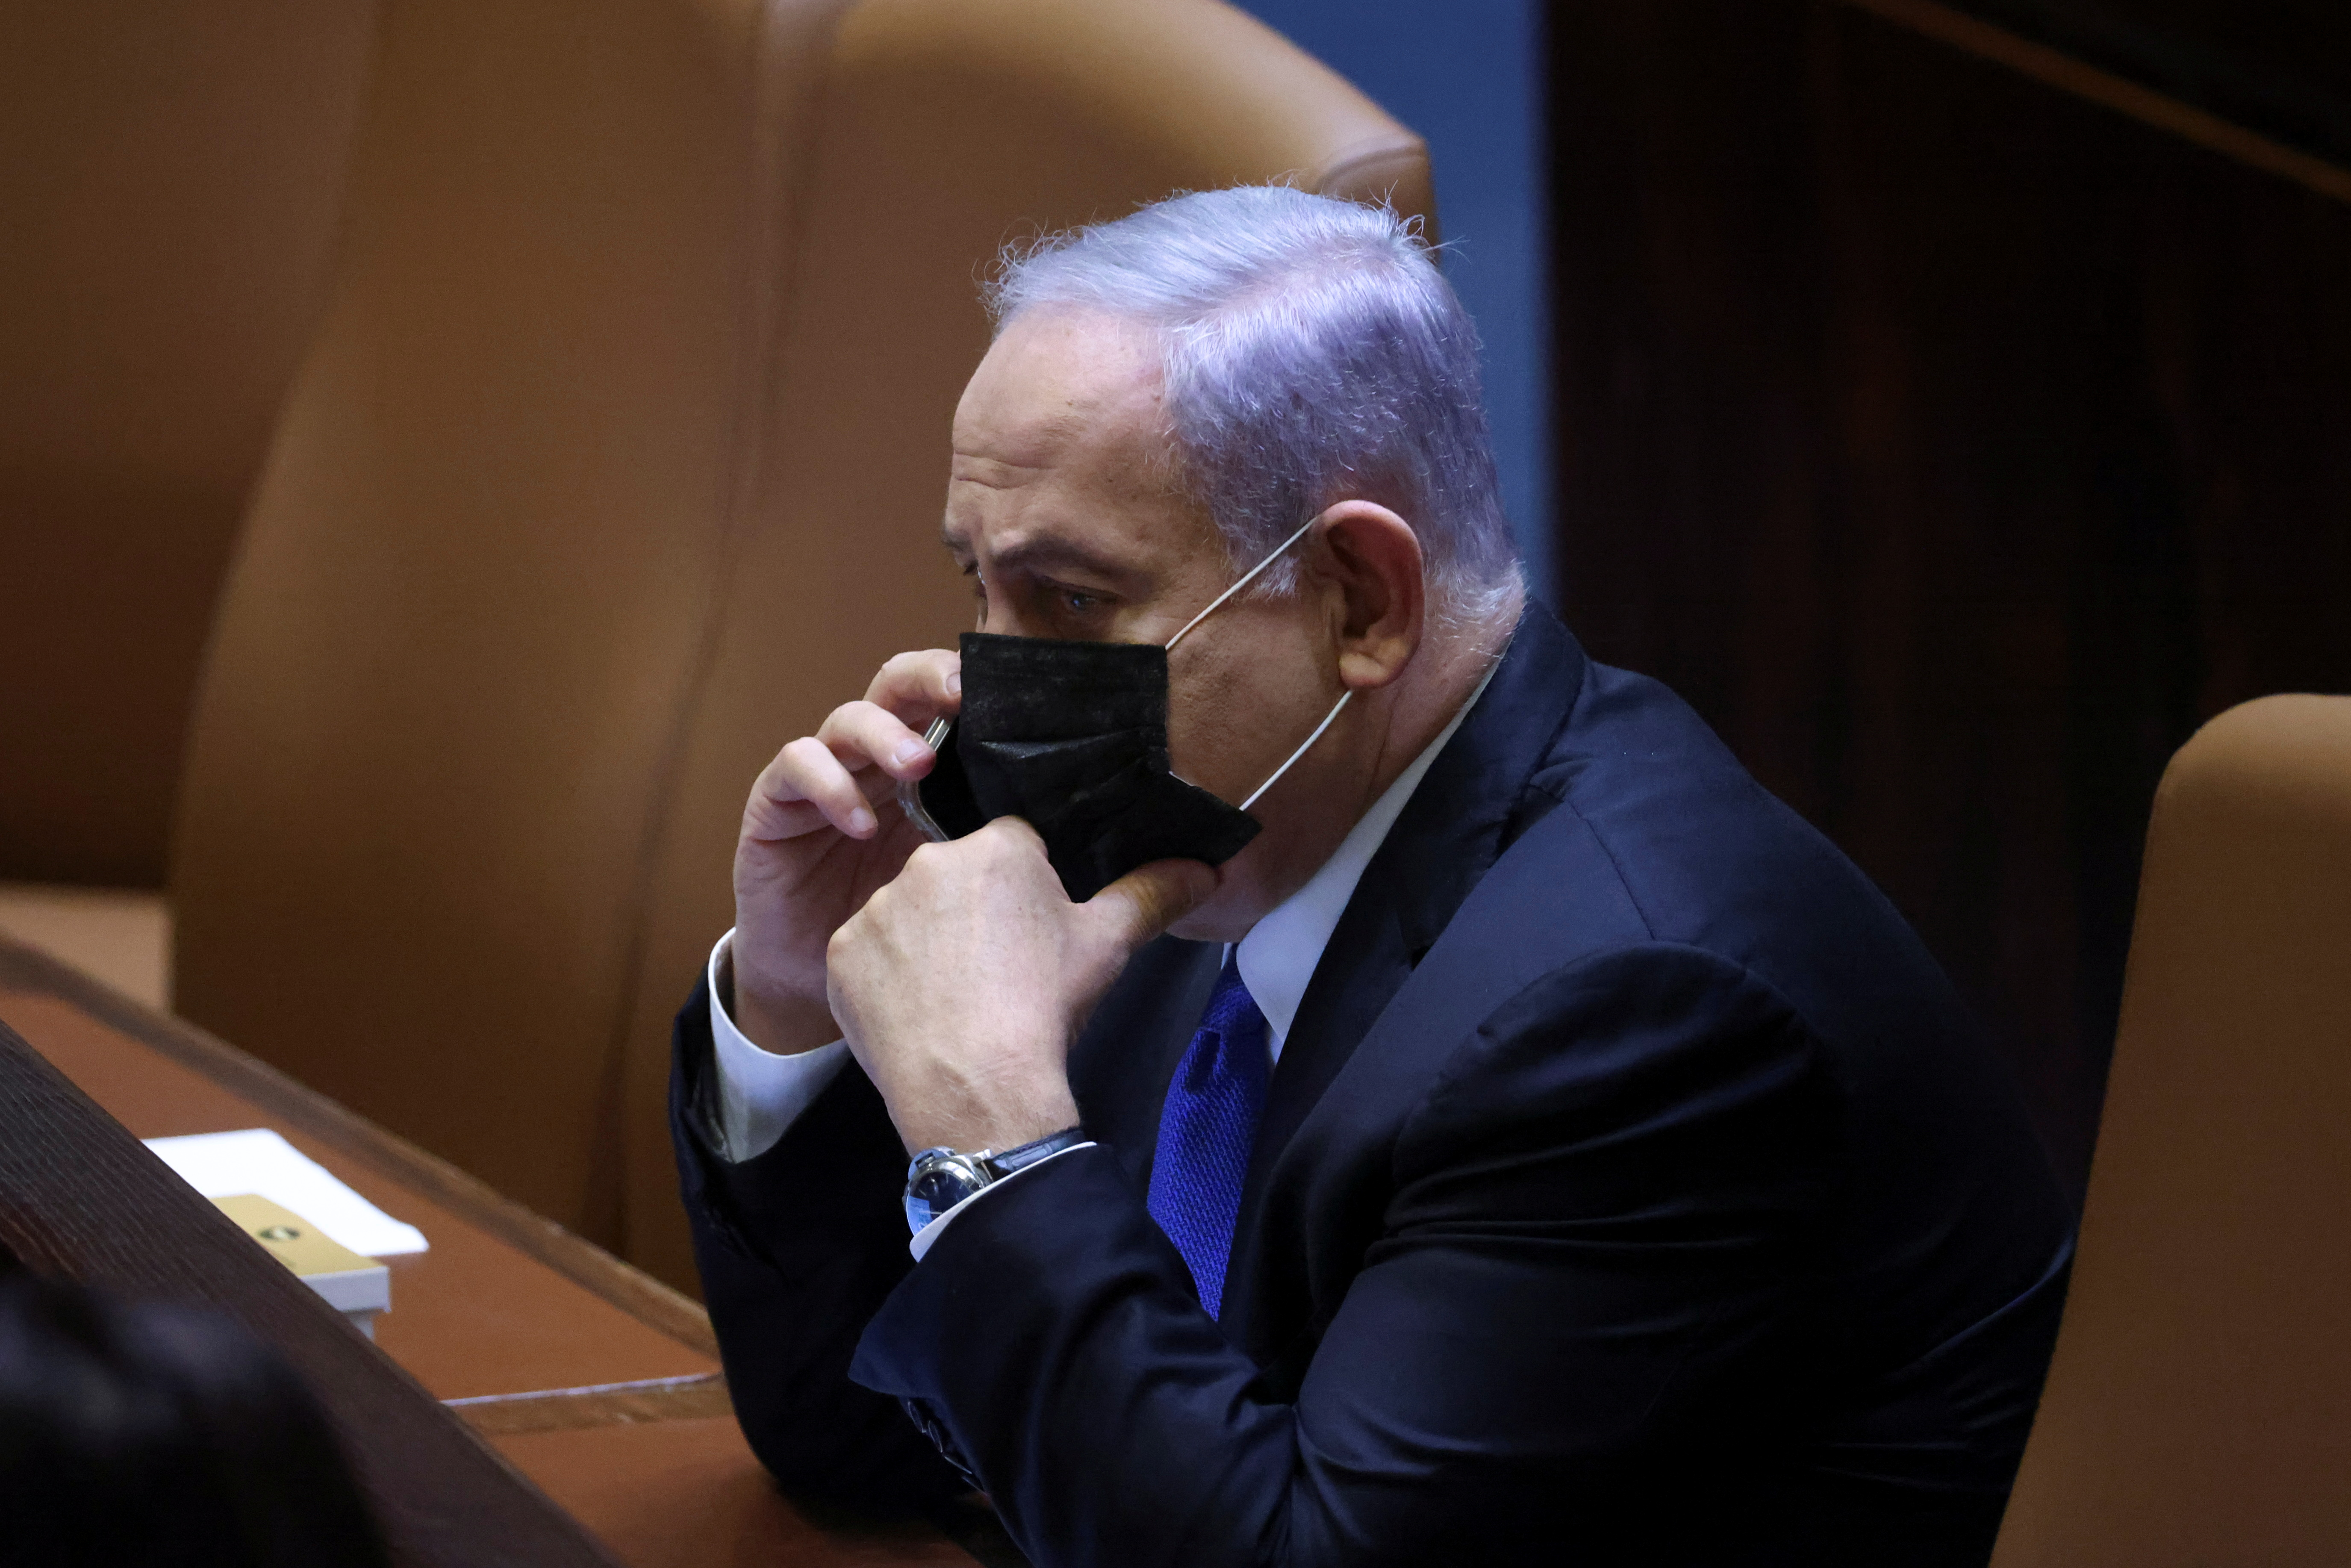 Israeli Prime Minister Benjamin Netanyahu speaks on his mobile phone during a special session of the Knesset whereby Israeli lawmakers elect a new president, at the plenum in the Knesset, Israel's parliament, in Jerusalem June 2, 2021. REUTERS/Ronen Zvulun